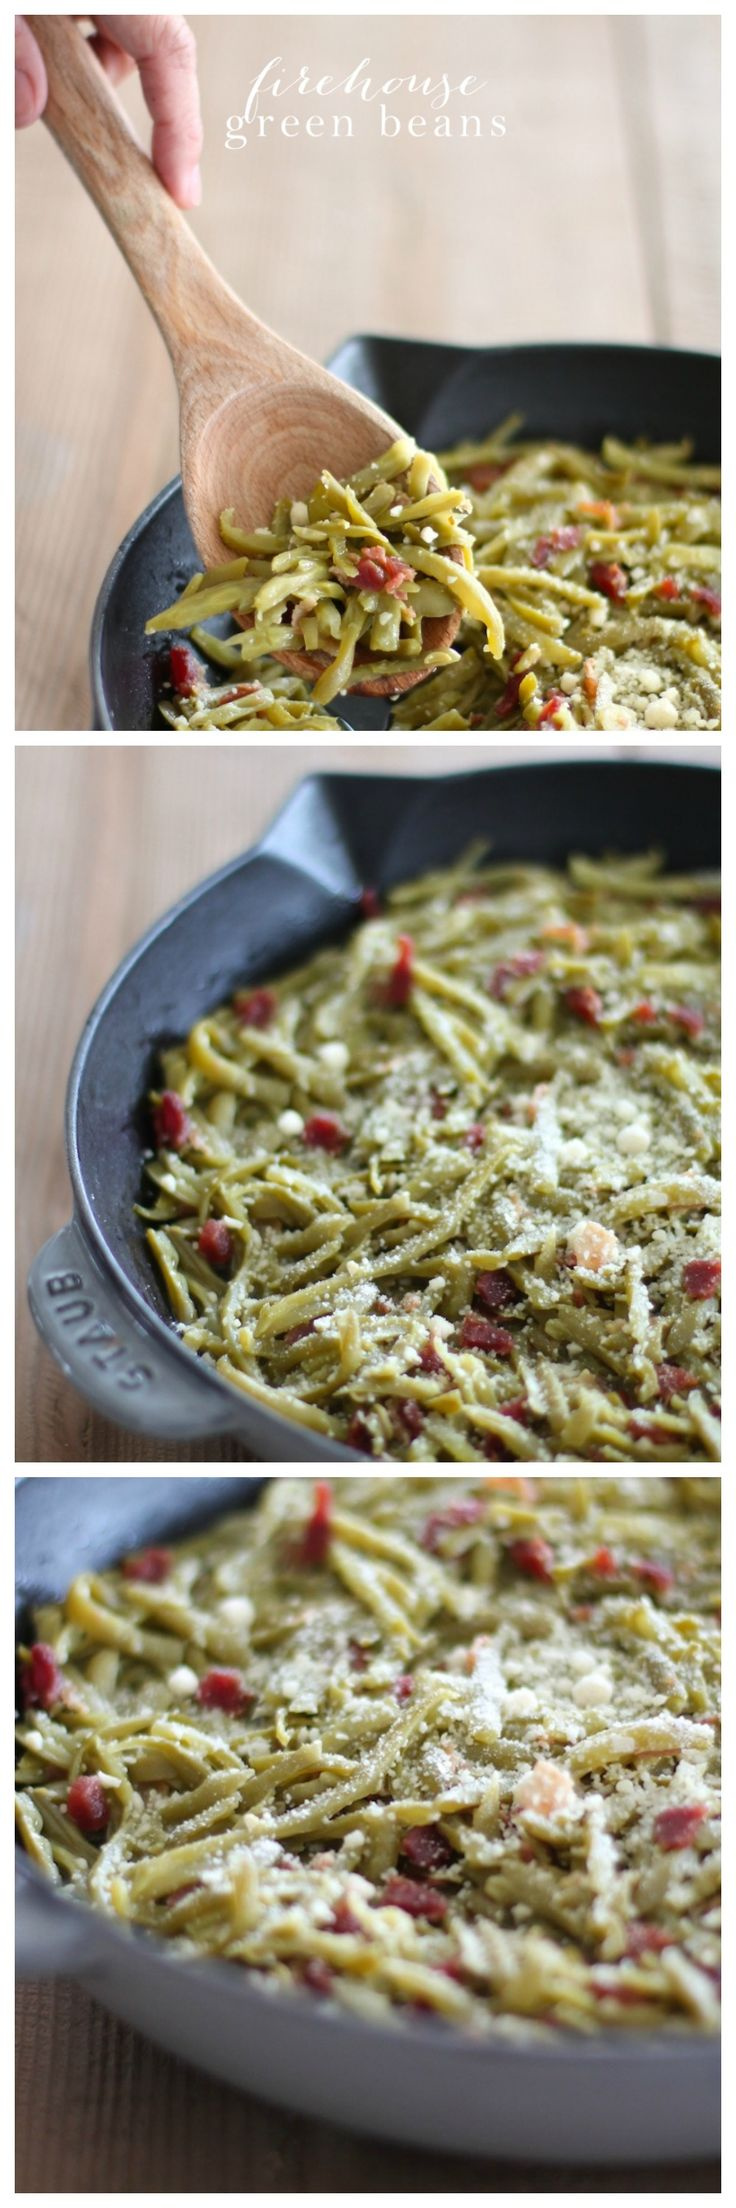 firehouse green beans make for an easy and delicious addition to your holiday menu